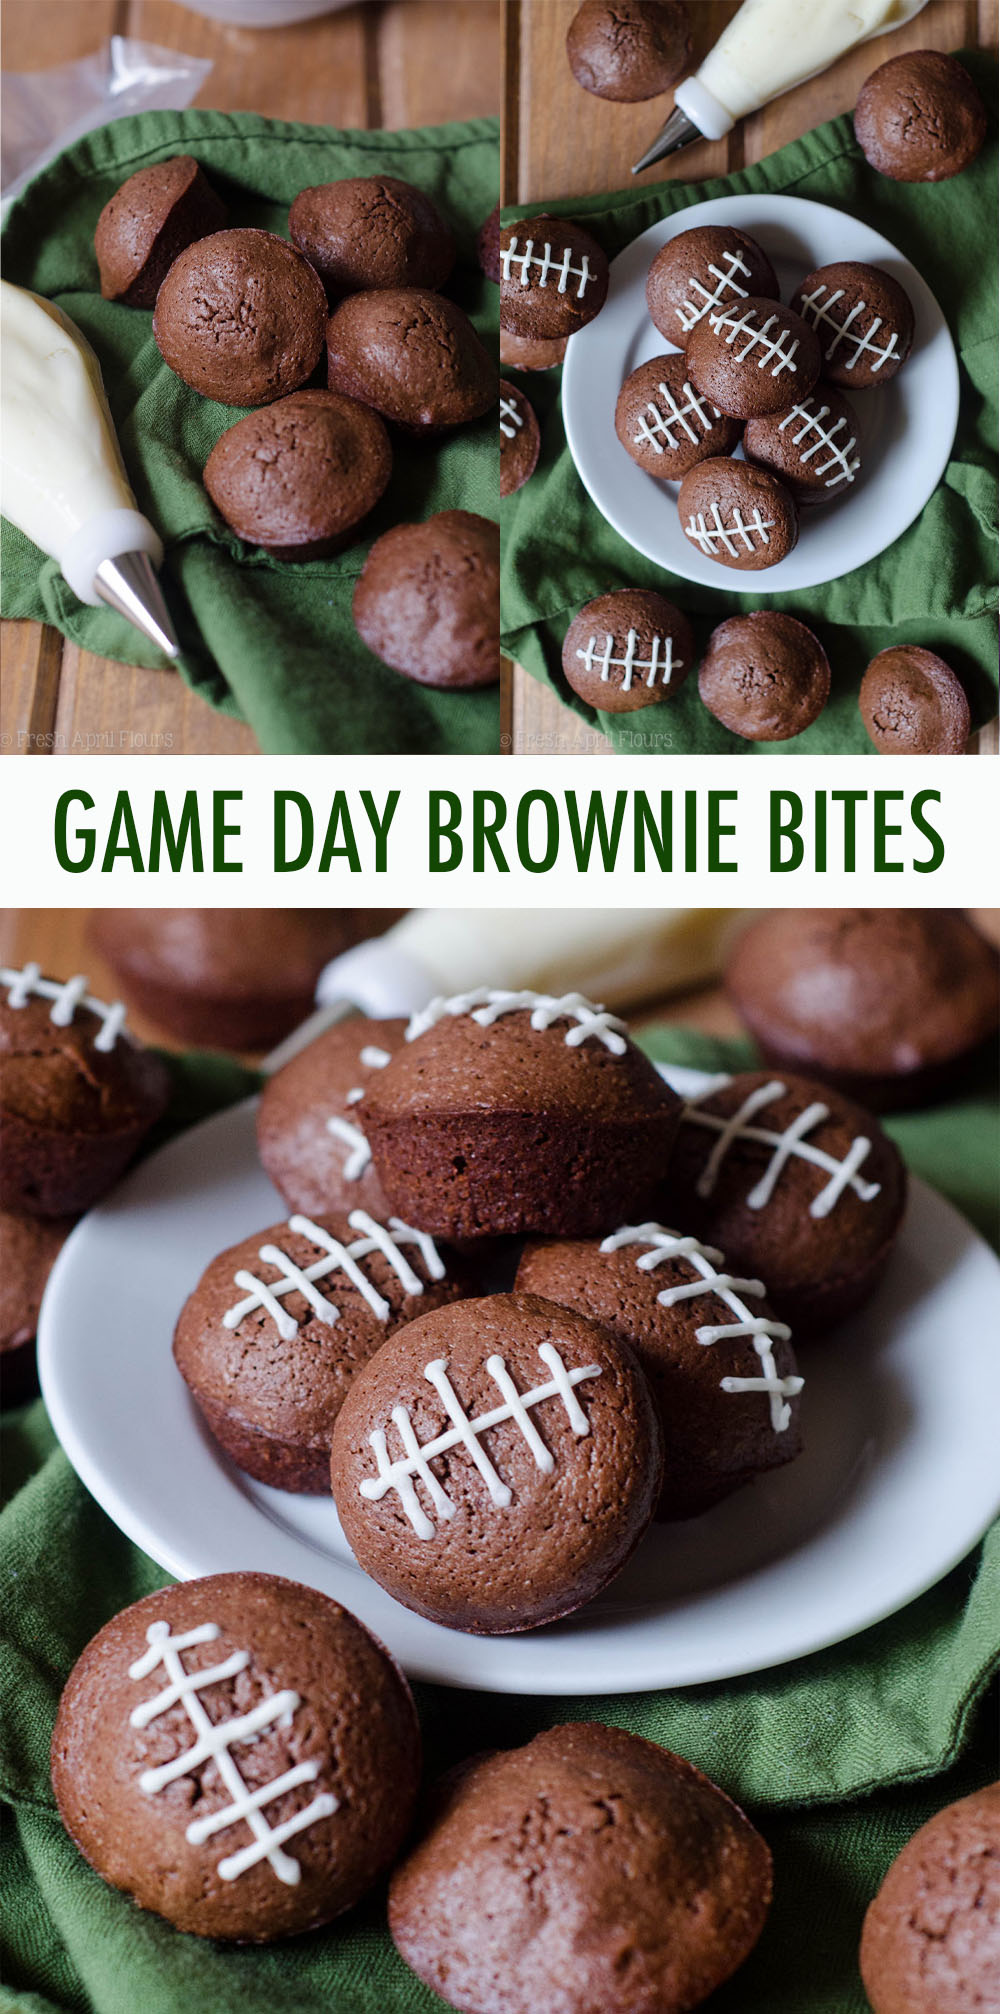 Adorable bite-size brownies adorned with buttercream football stripes. Perfect for any football game day you're looking to celebrate!